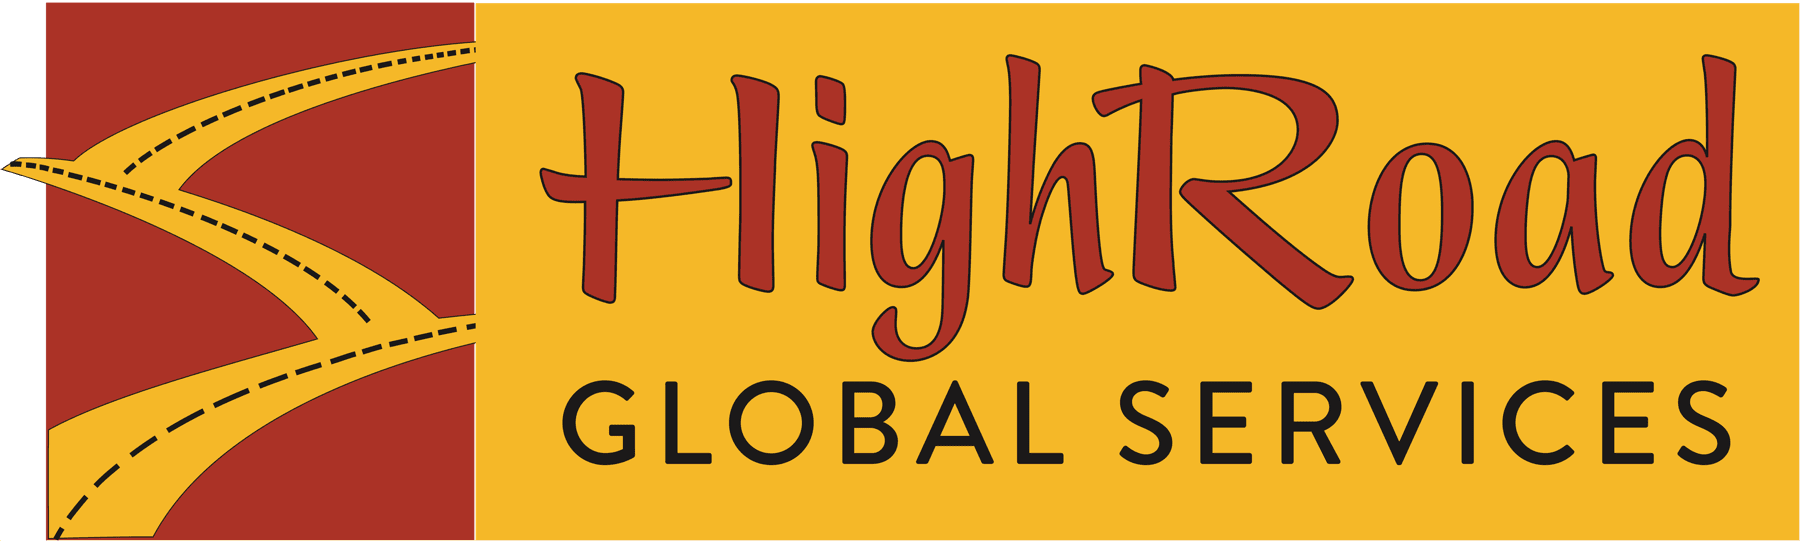 Highroad Global Services